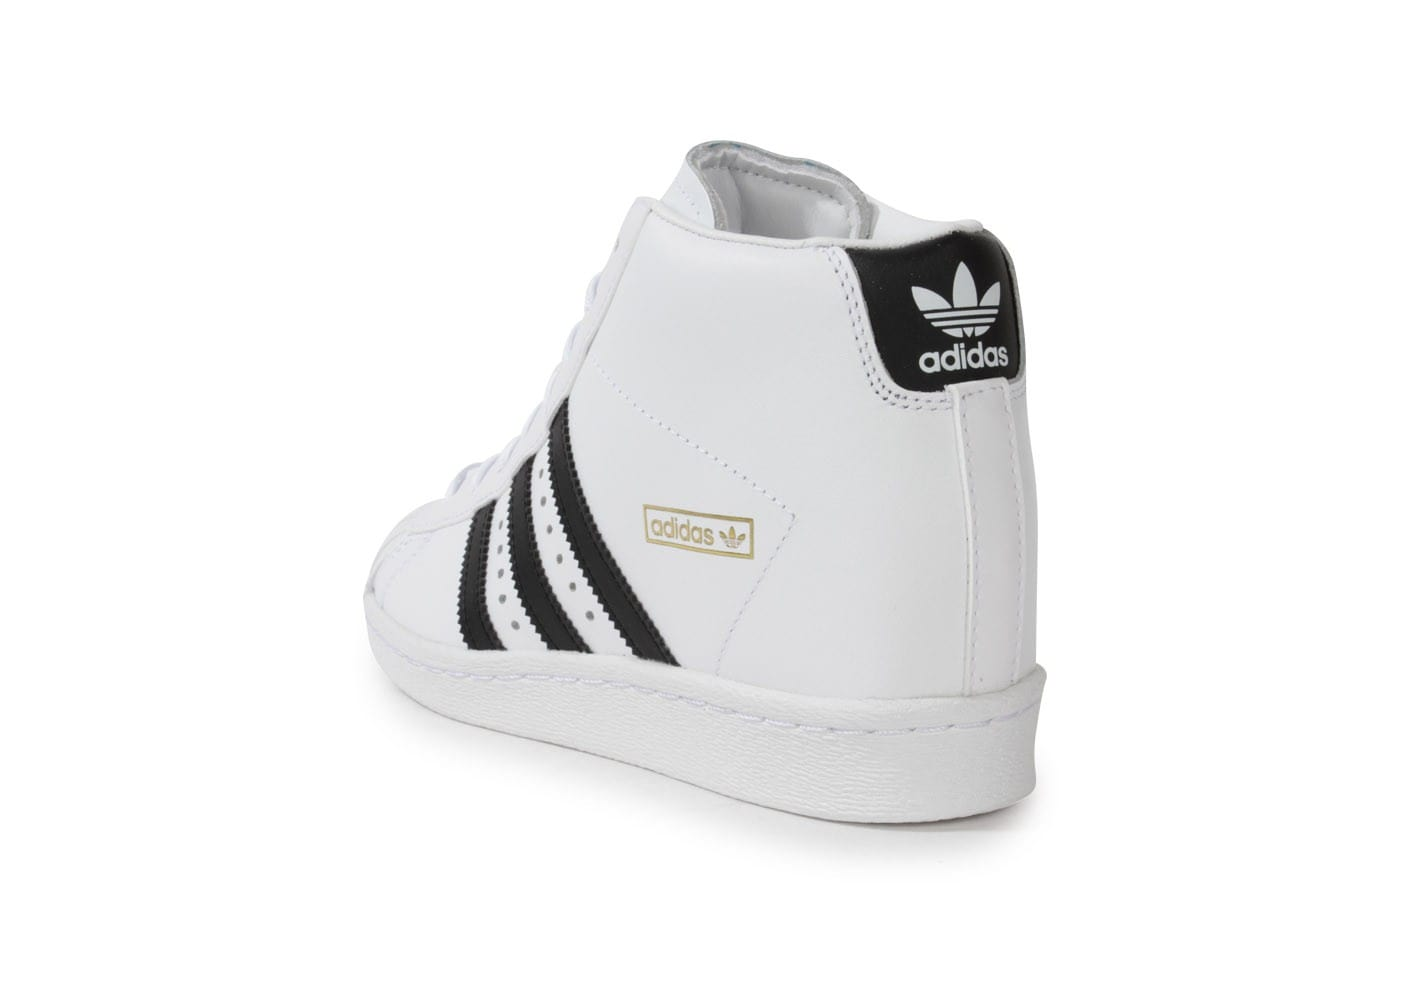 Up Blanche Adidas Chaussures Chausport Superstar Compensee qzSpGUMV